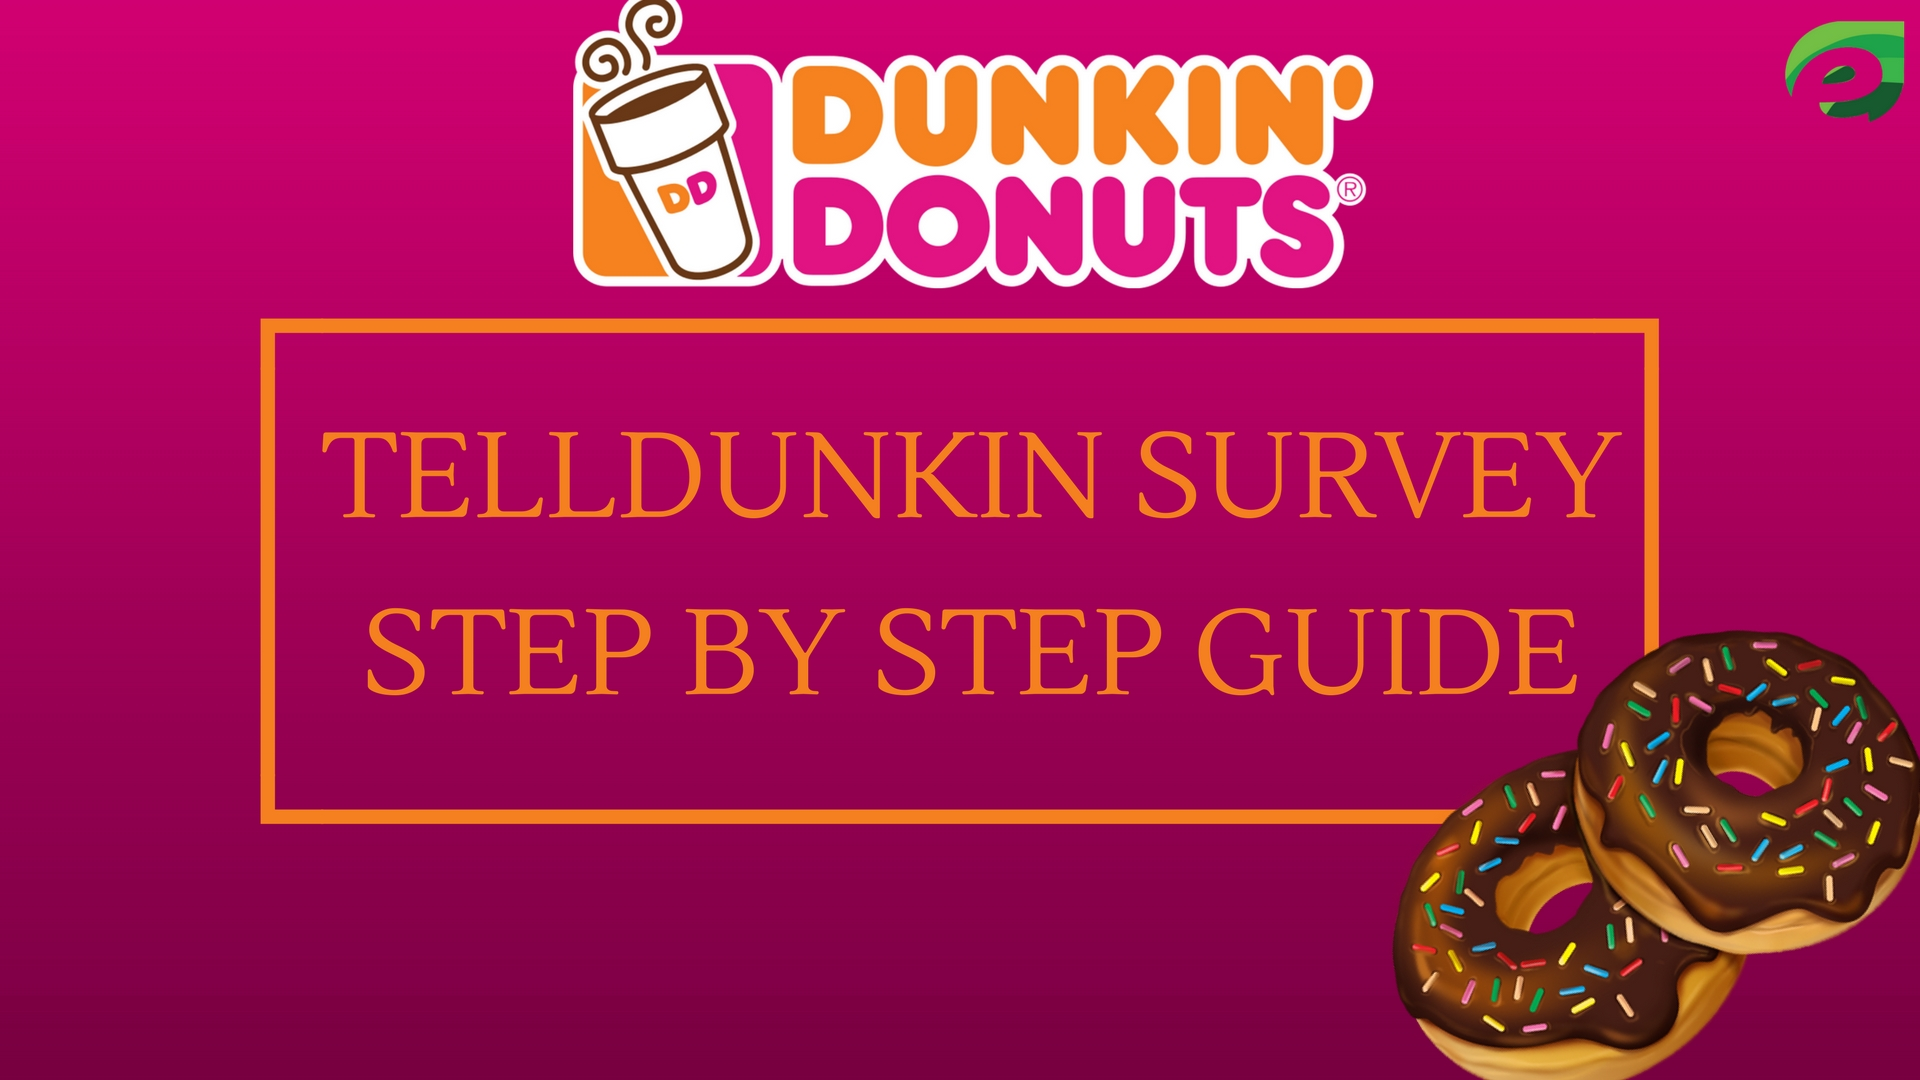 dunkin donut entry mode If you want to open a dunkin donuts franchise, it offers some of the best field-support experts in franchising, development, construction, and marketing.